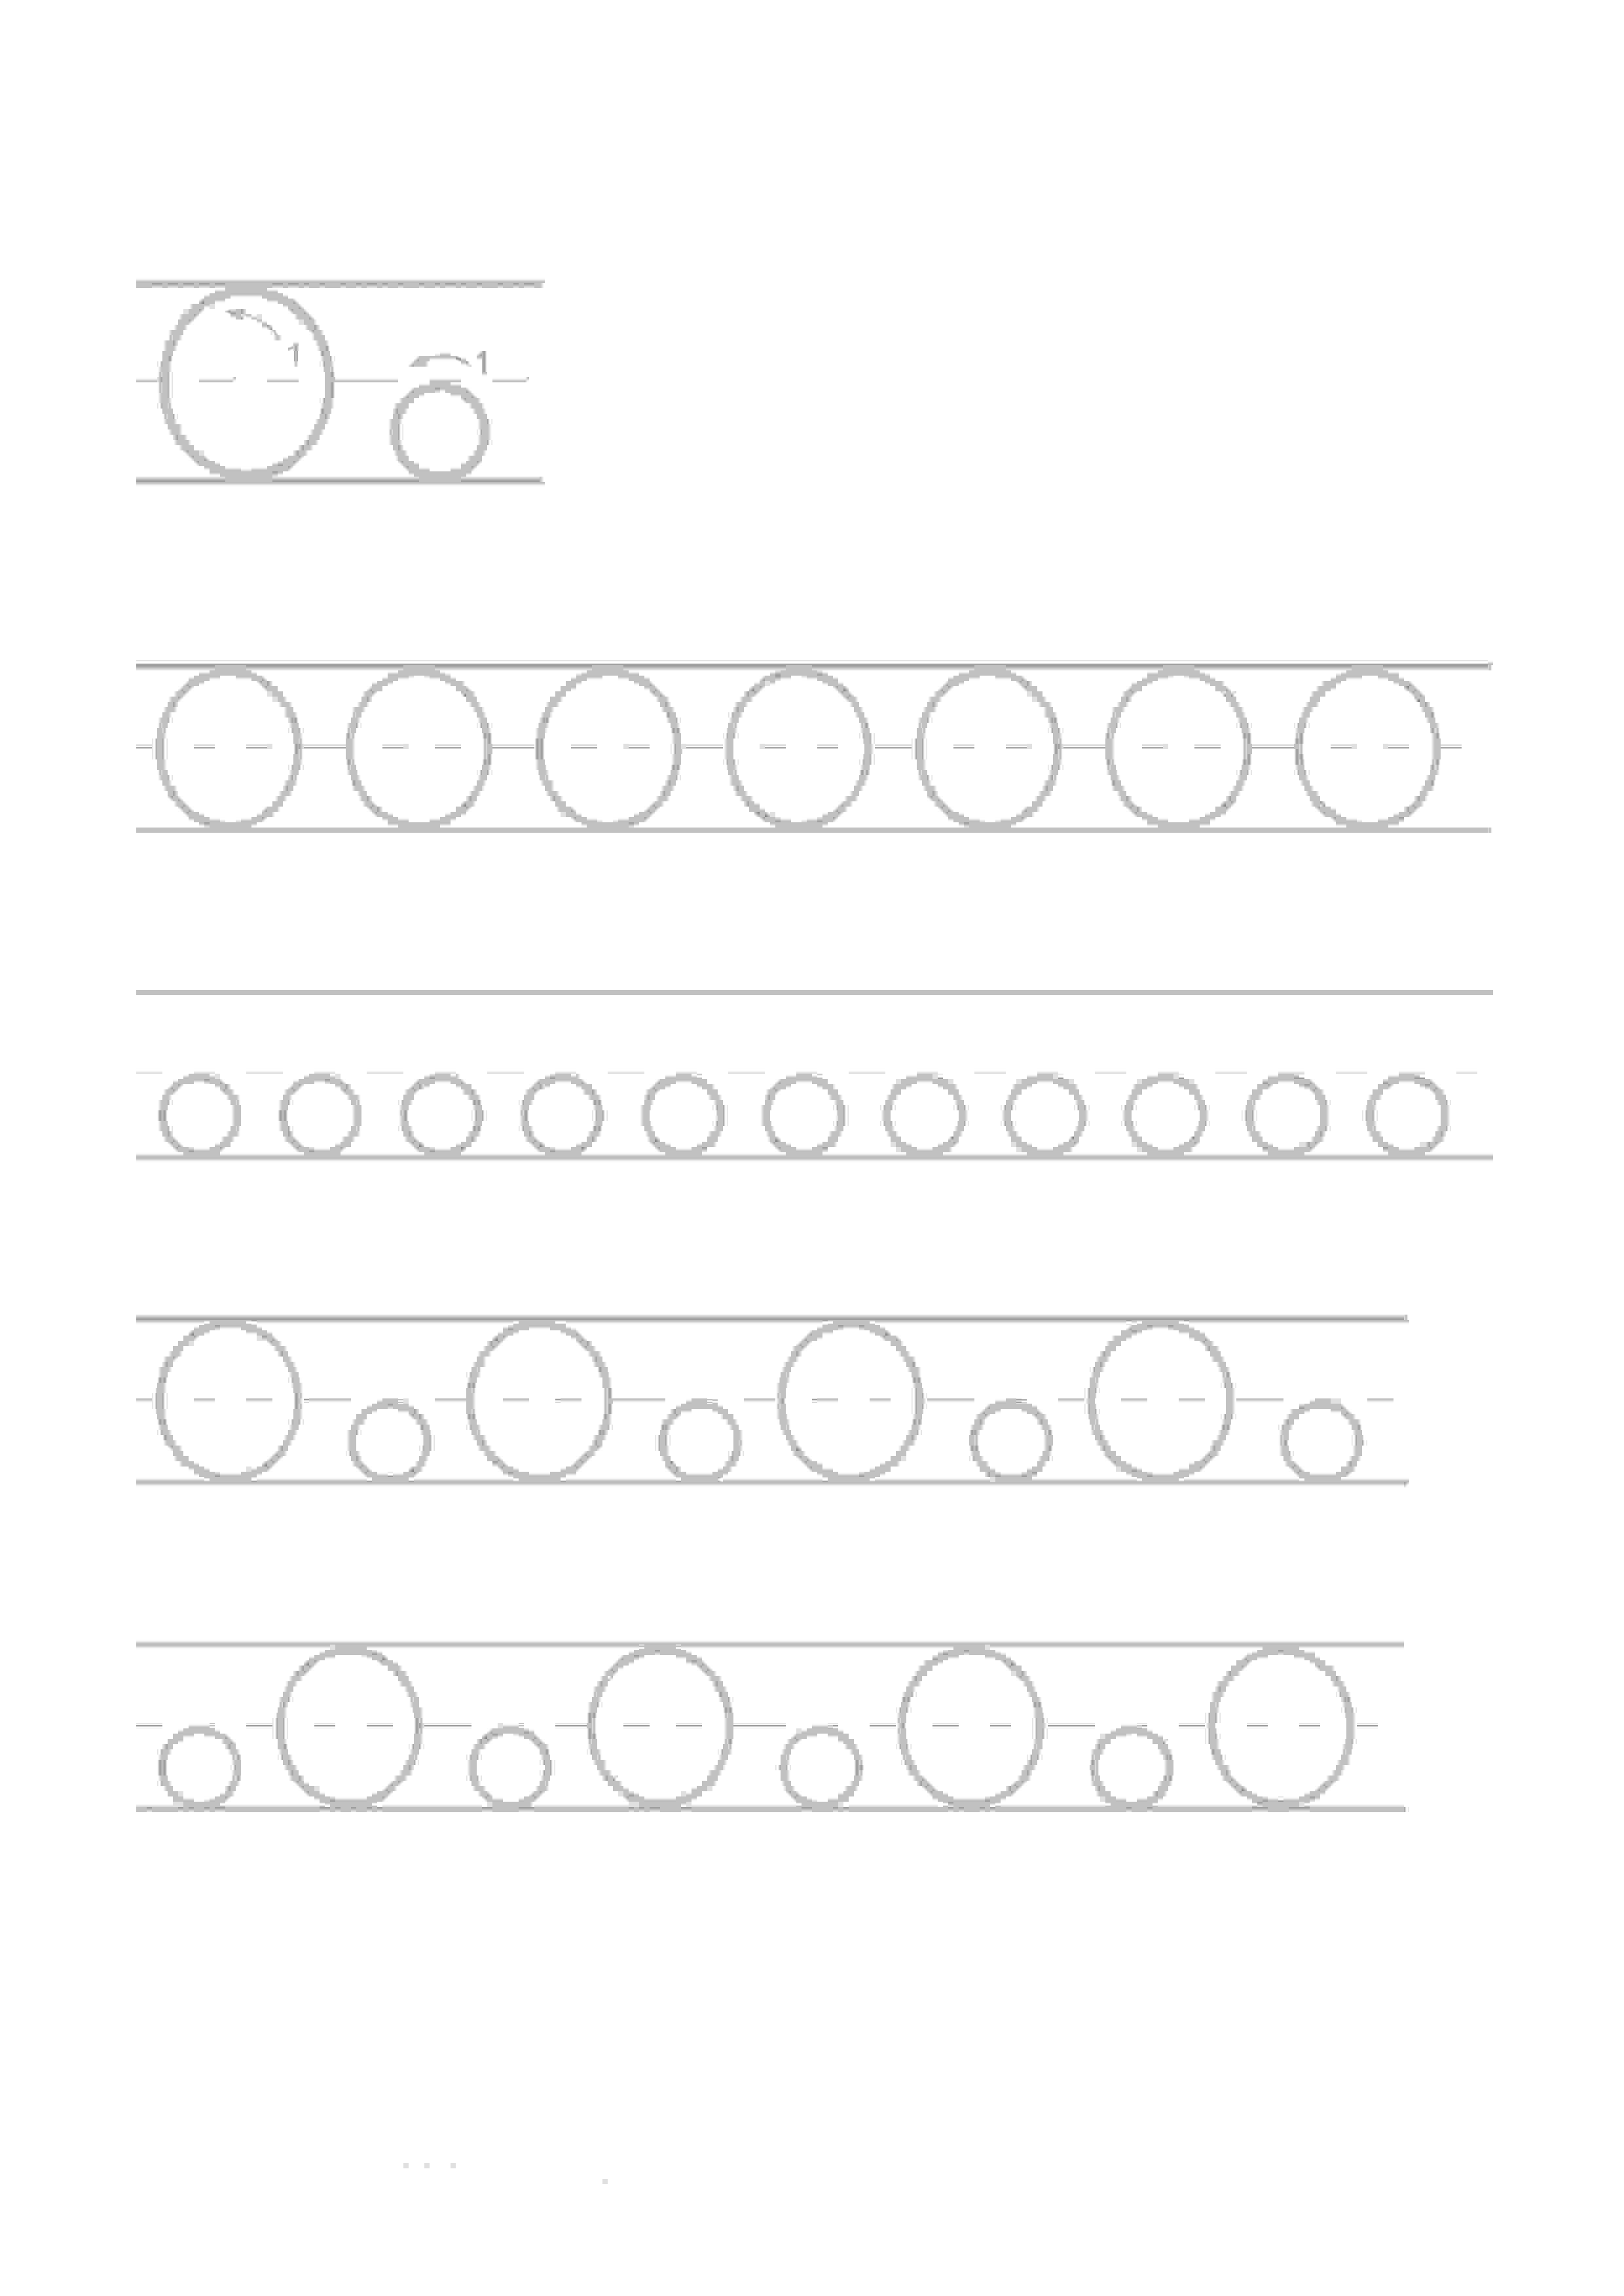 Printable Worksheets For Kids Alphabet Handwriting 15